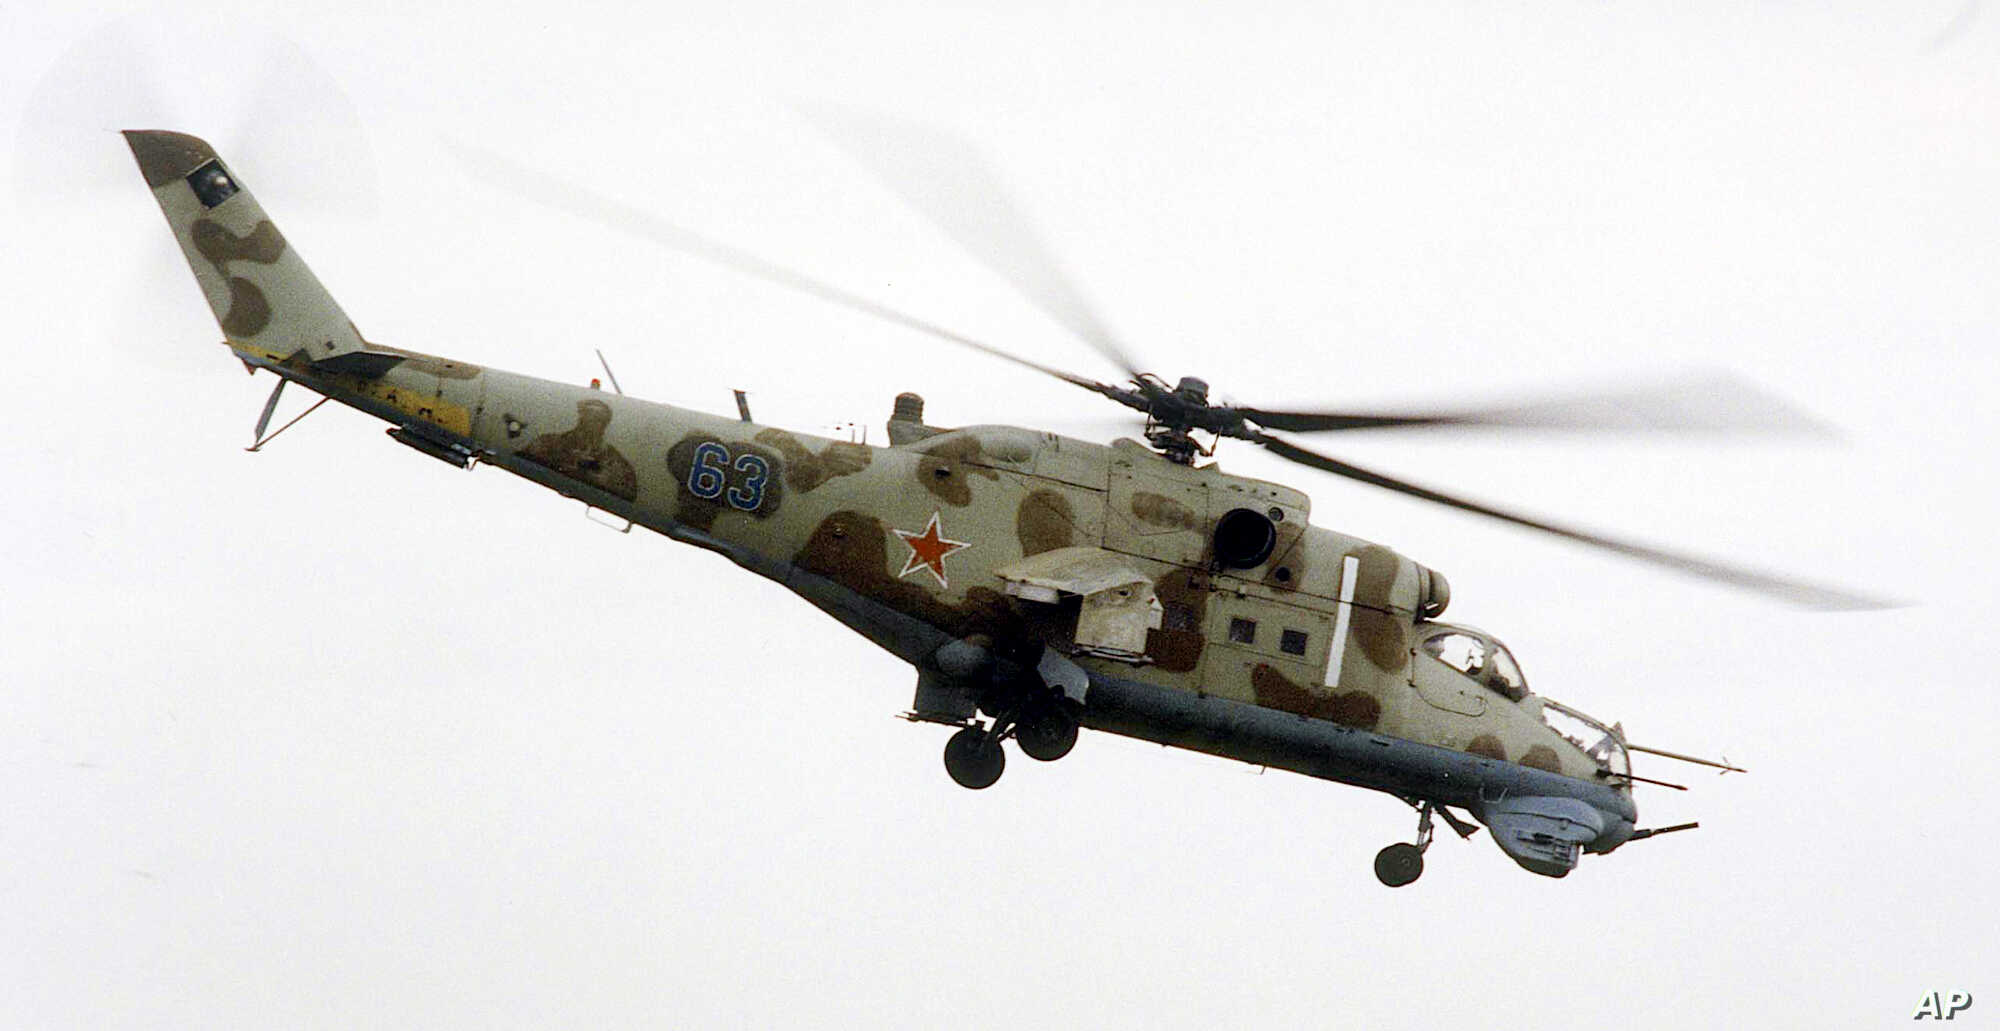 A Mi-24 helicopter gunship , the same model as the one that crashed Sunday in Syria, flies above the southern Russian city of Rostov-on-Don in this 2000 file photo.